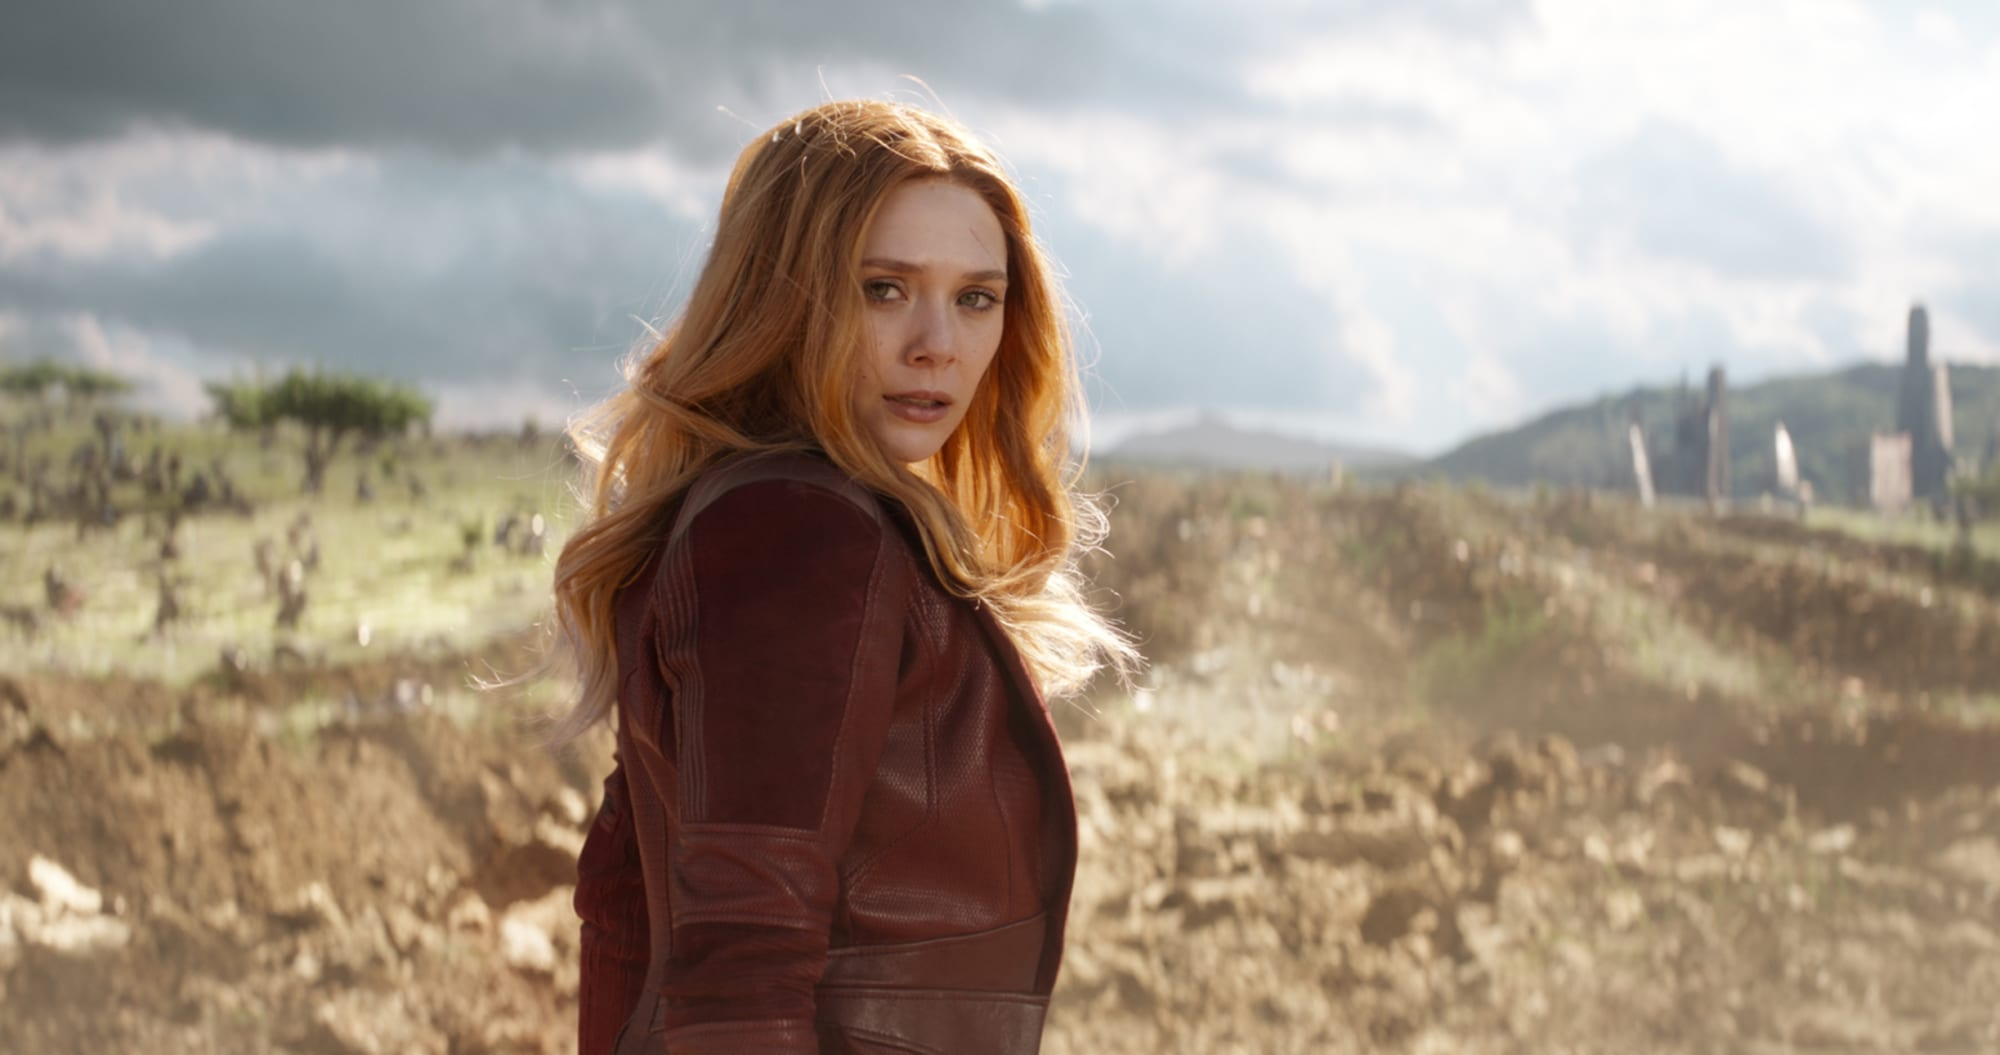 Elizabeth Olsen joined the MCU because of her love of Star Wars